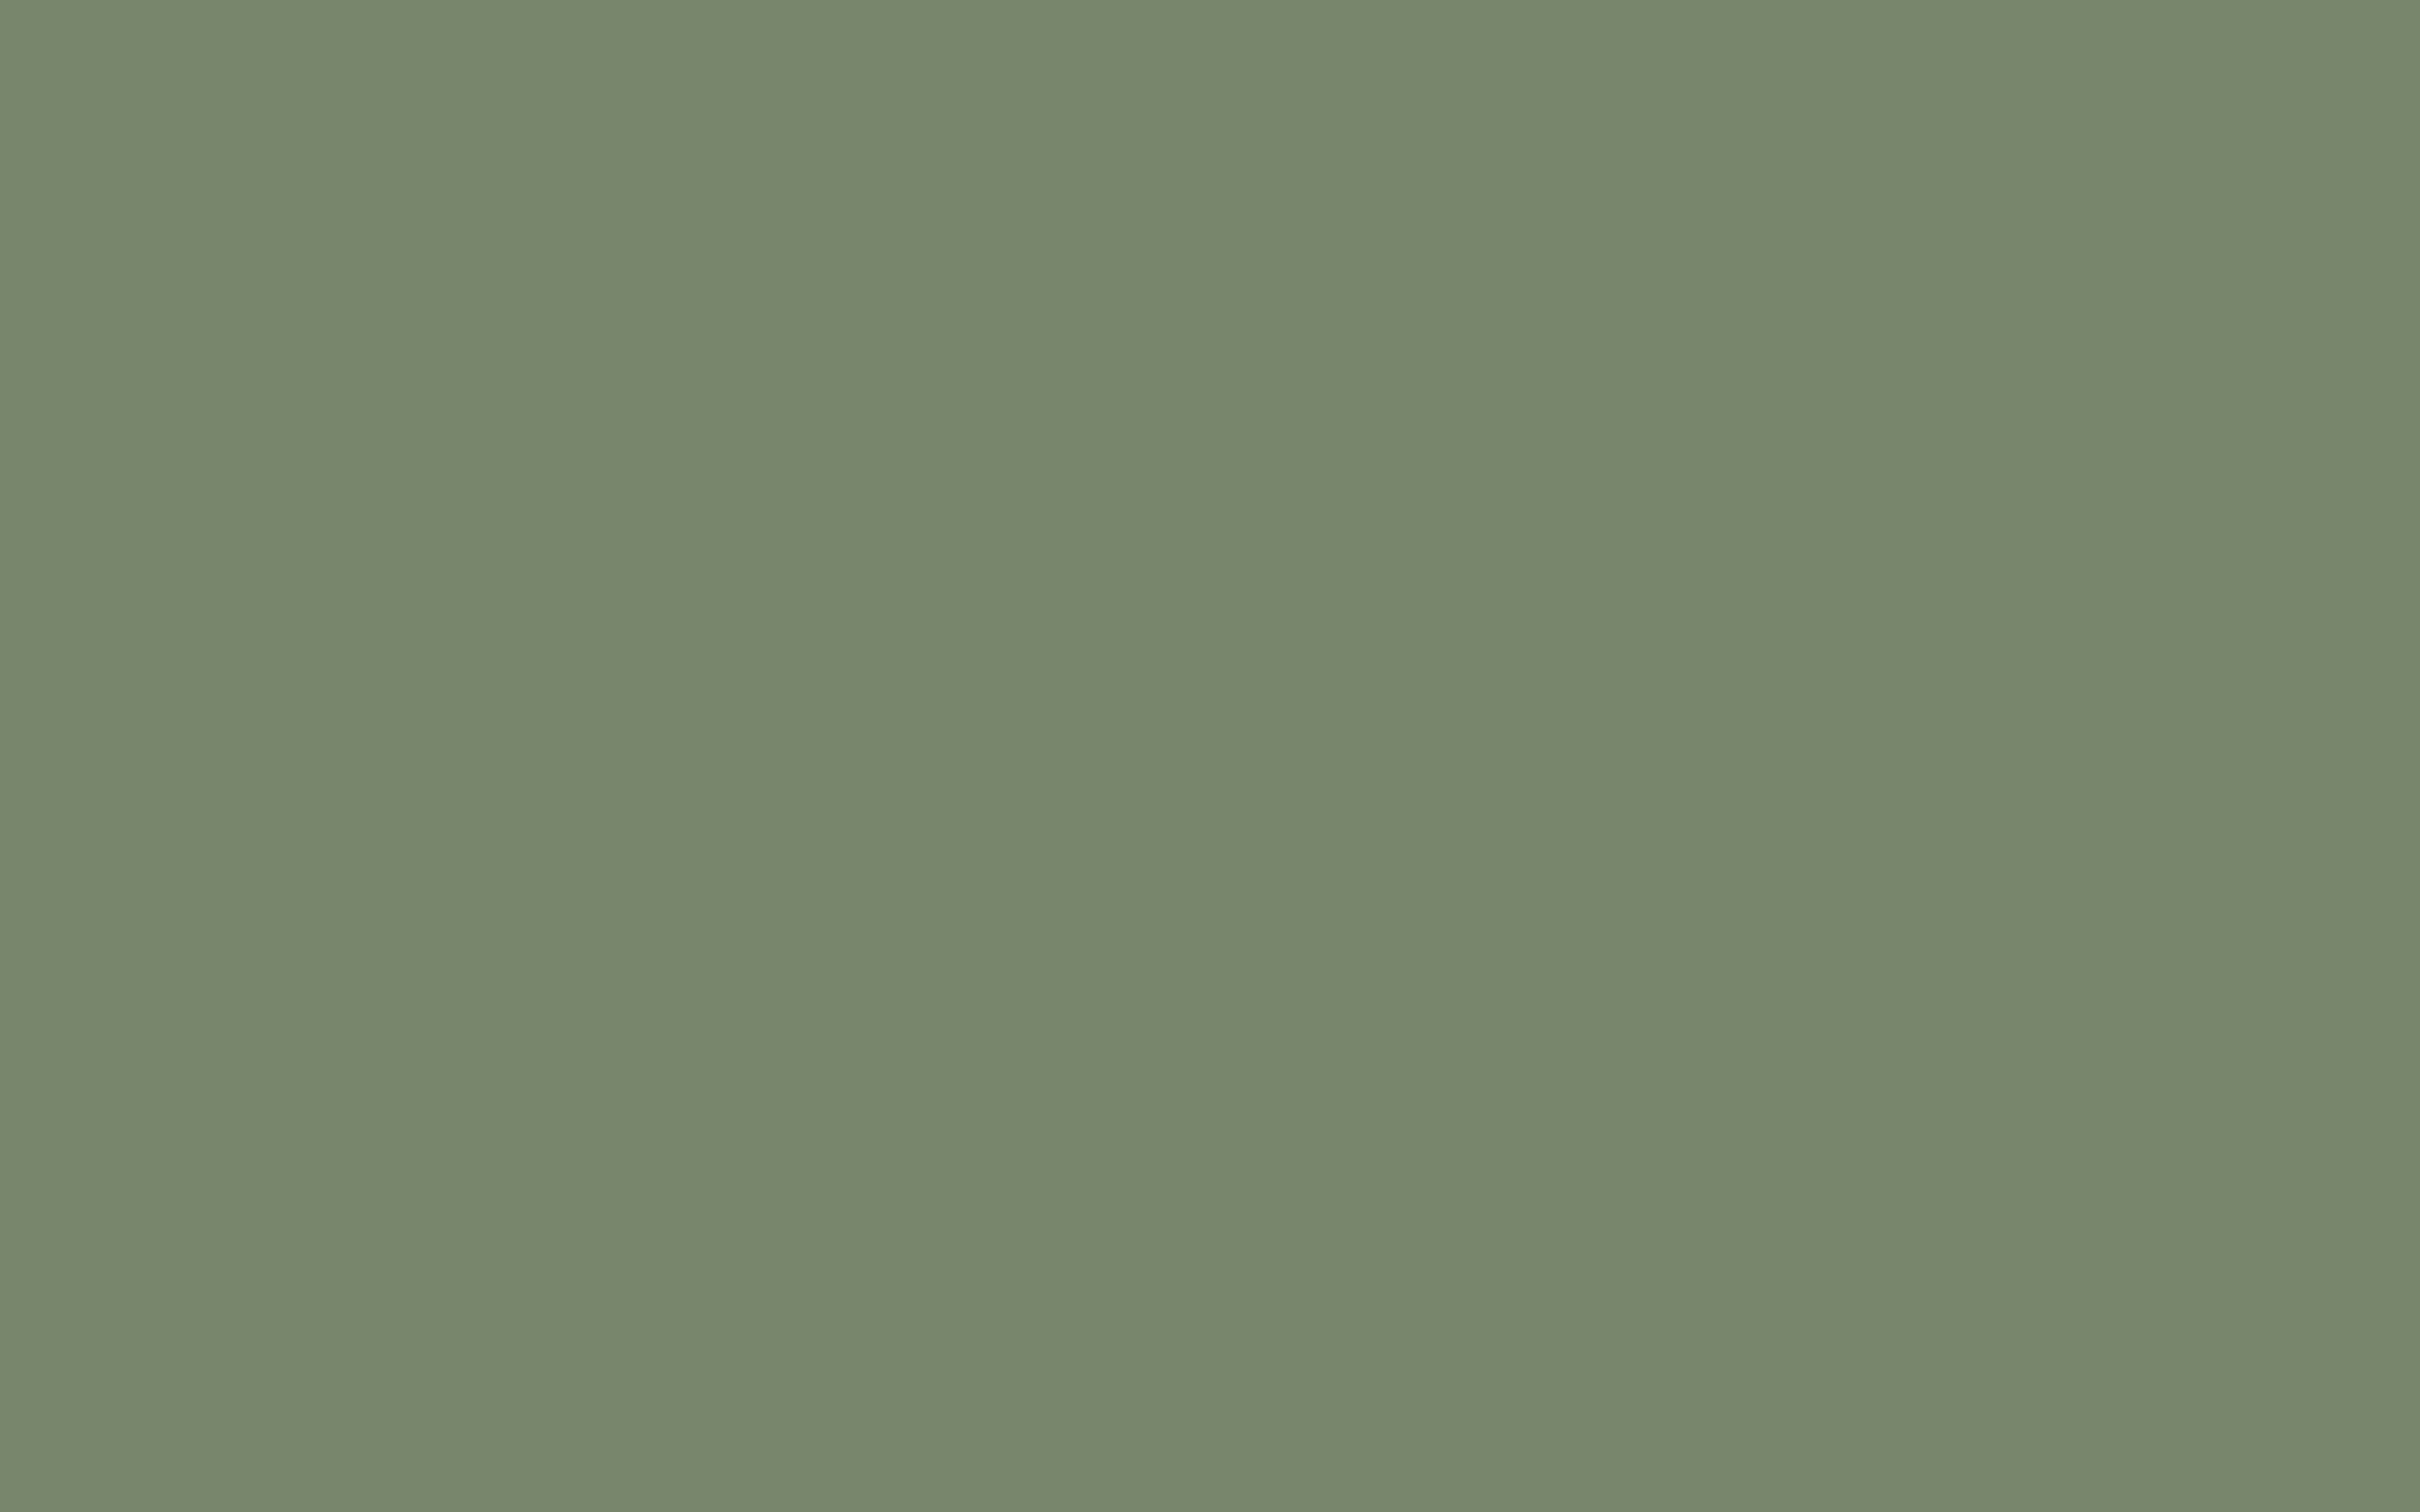 2880x1800 Camouflage Green Solid Color Background